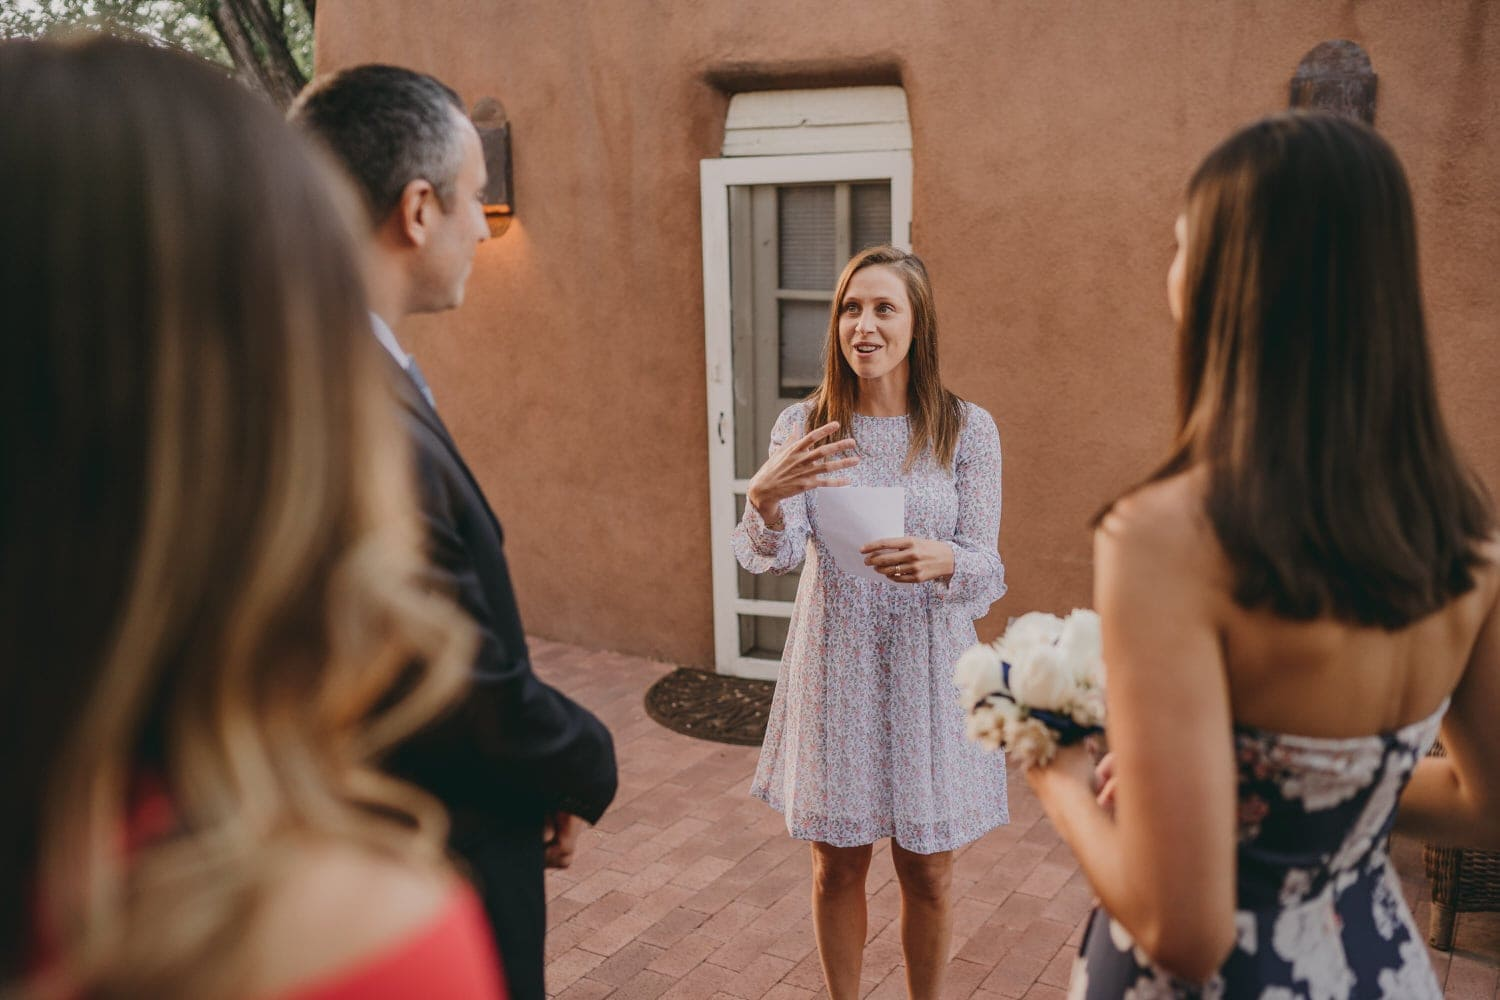 Wedding guest holding a poem and reciting it